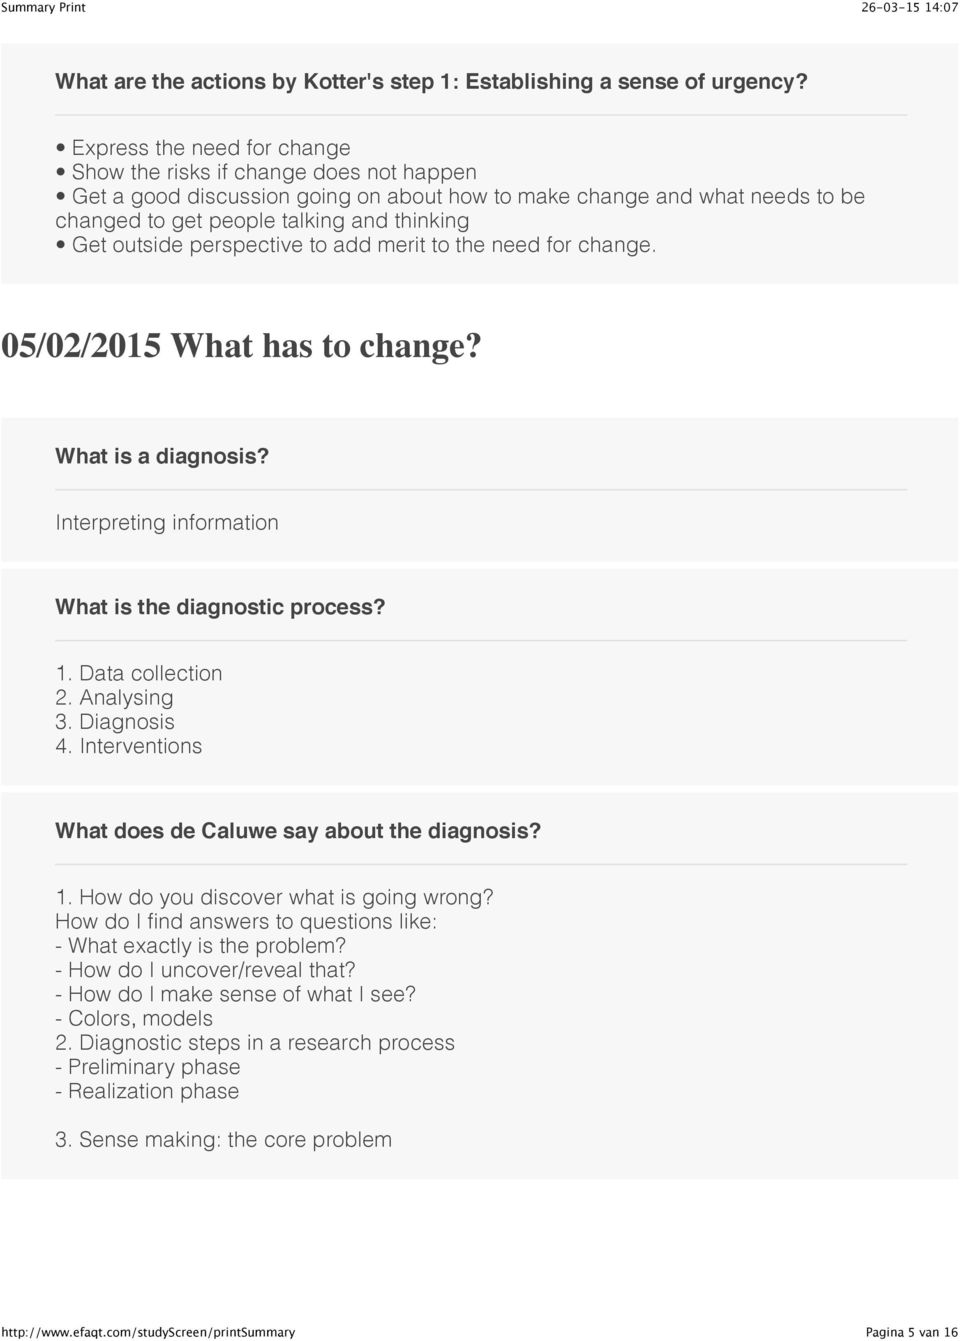 outside perspective to add merit to the need for change. 05/02/2015 What has to change? What is a diagnosis? Interpreting information What is the diagnostic process? 1. Data collection 2. Analysing 3.